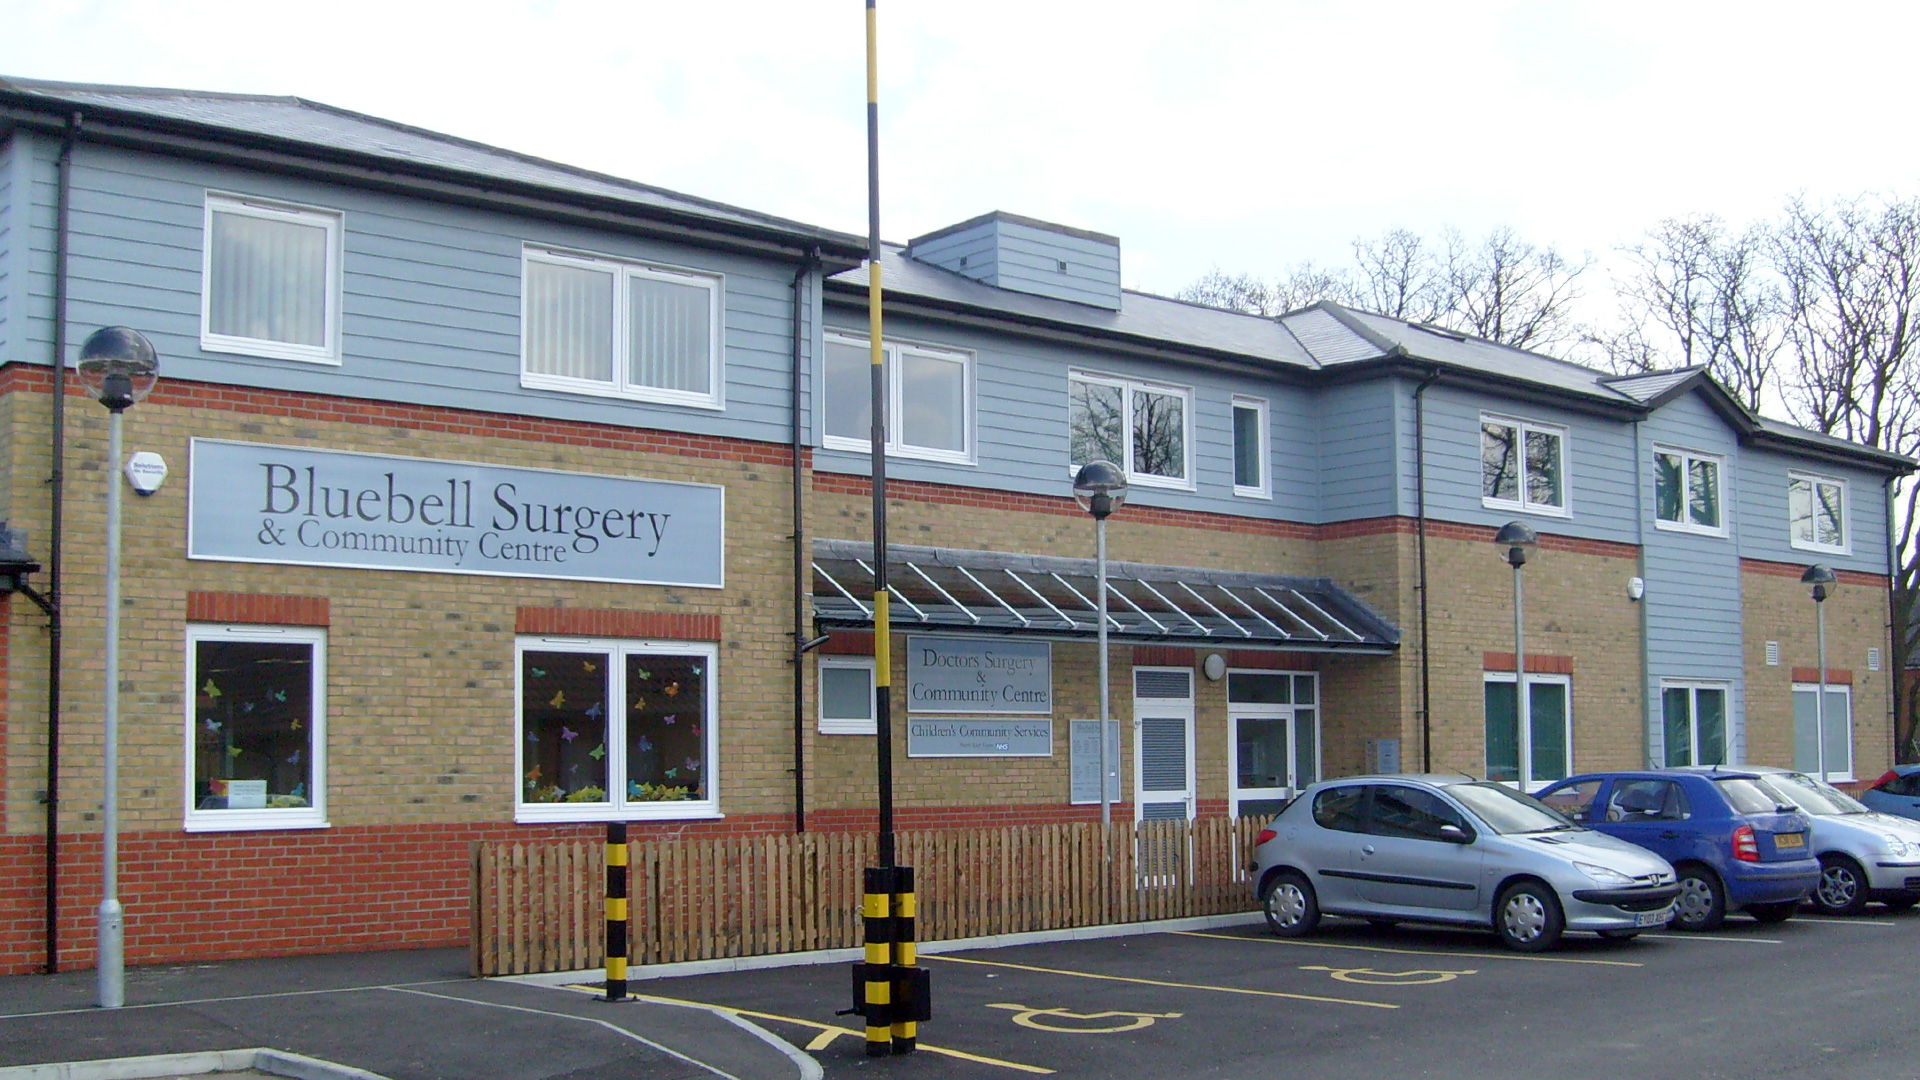 Bluebell Surgery and community surgery